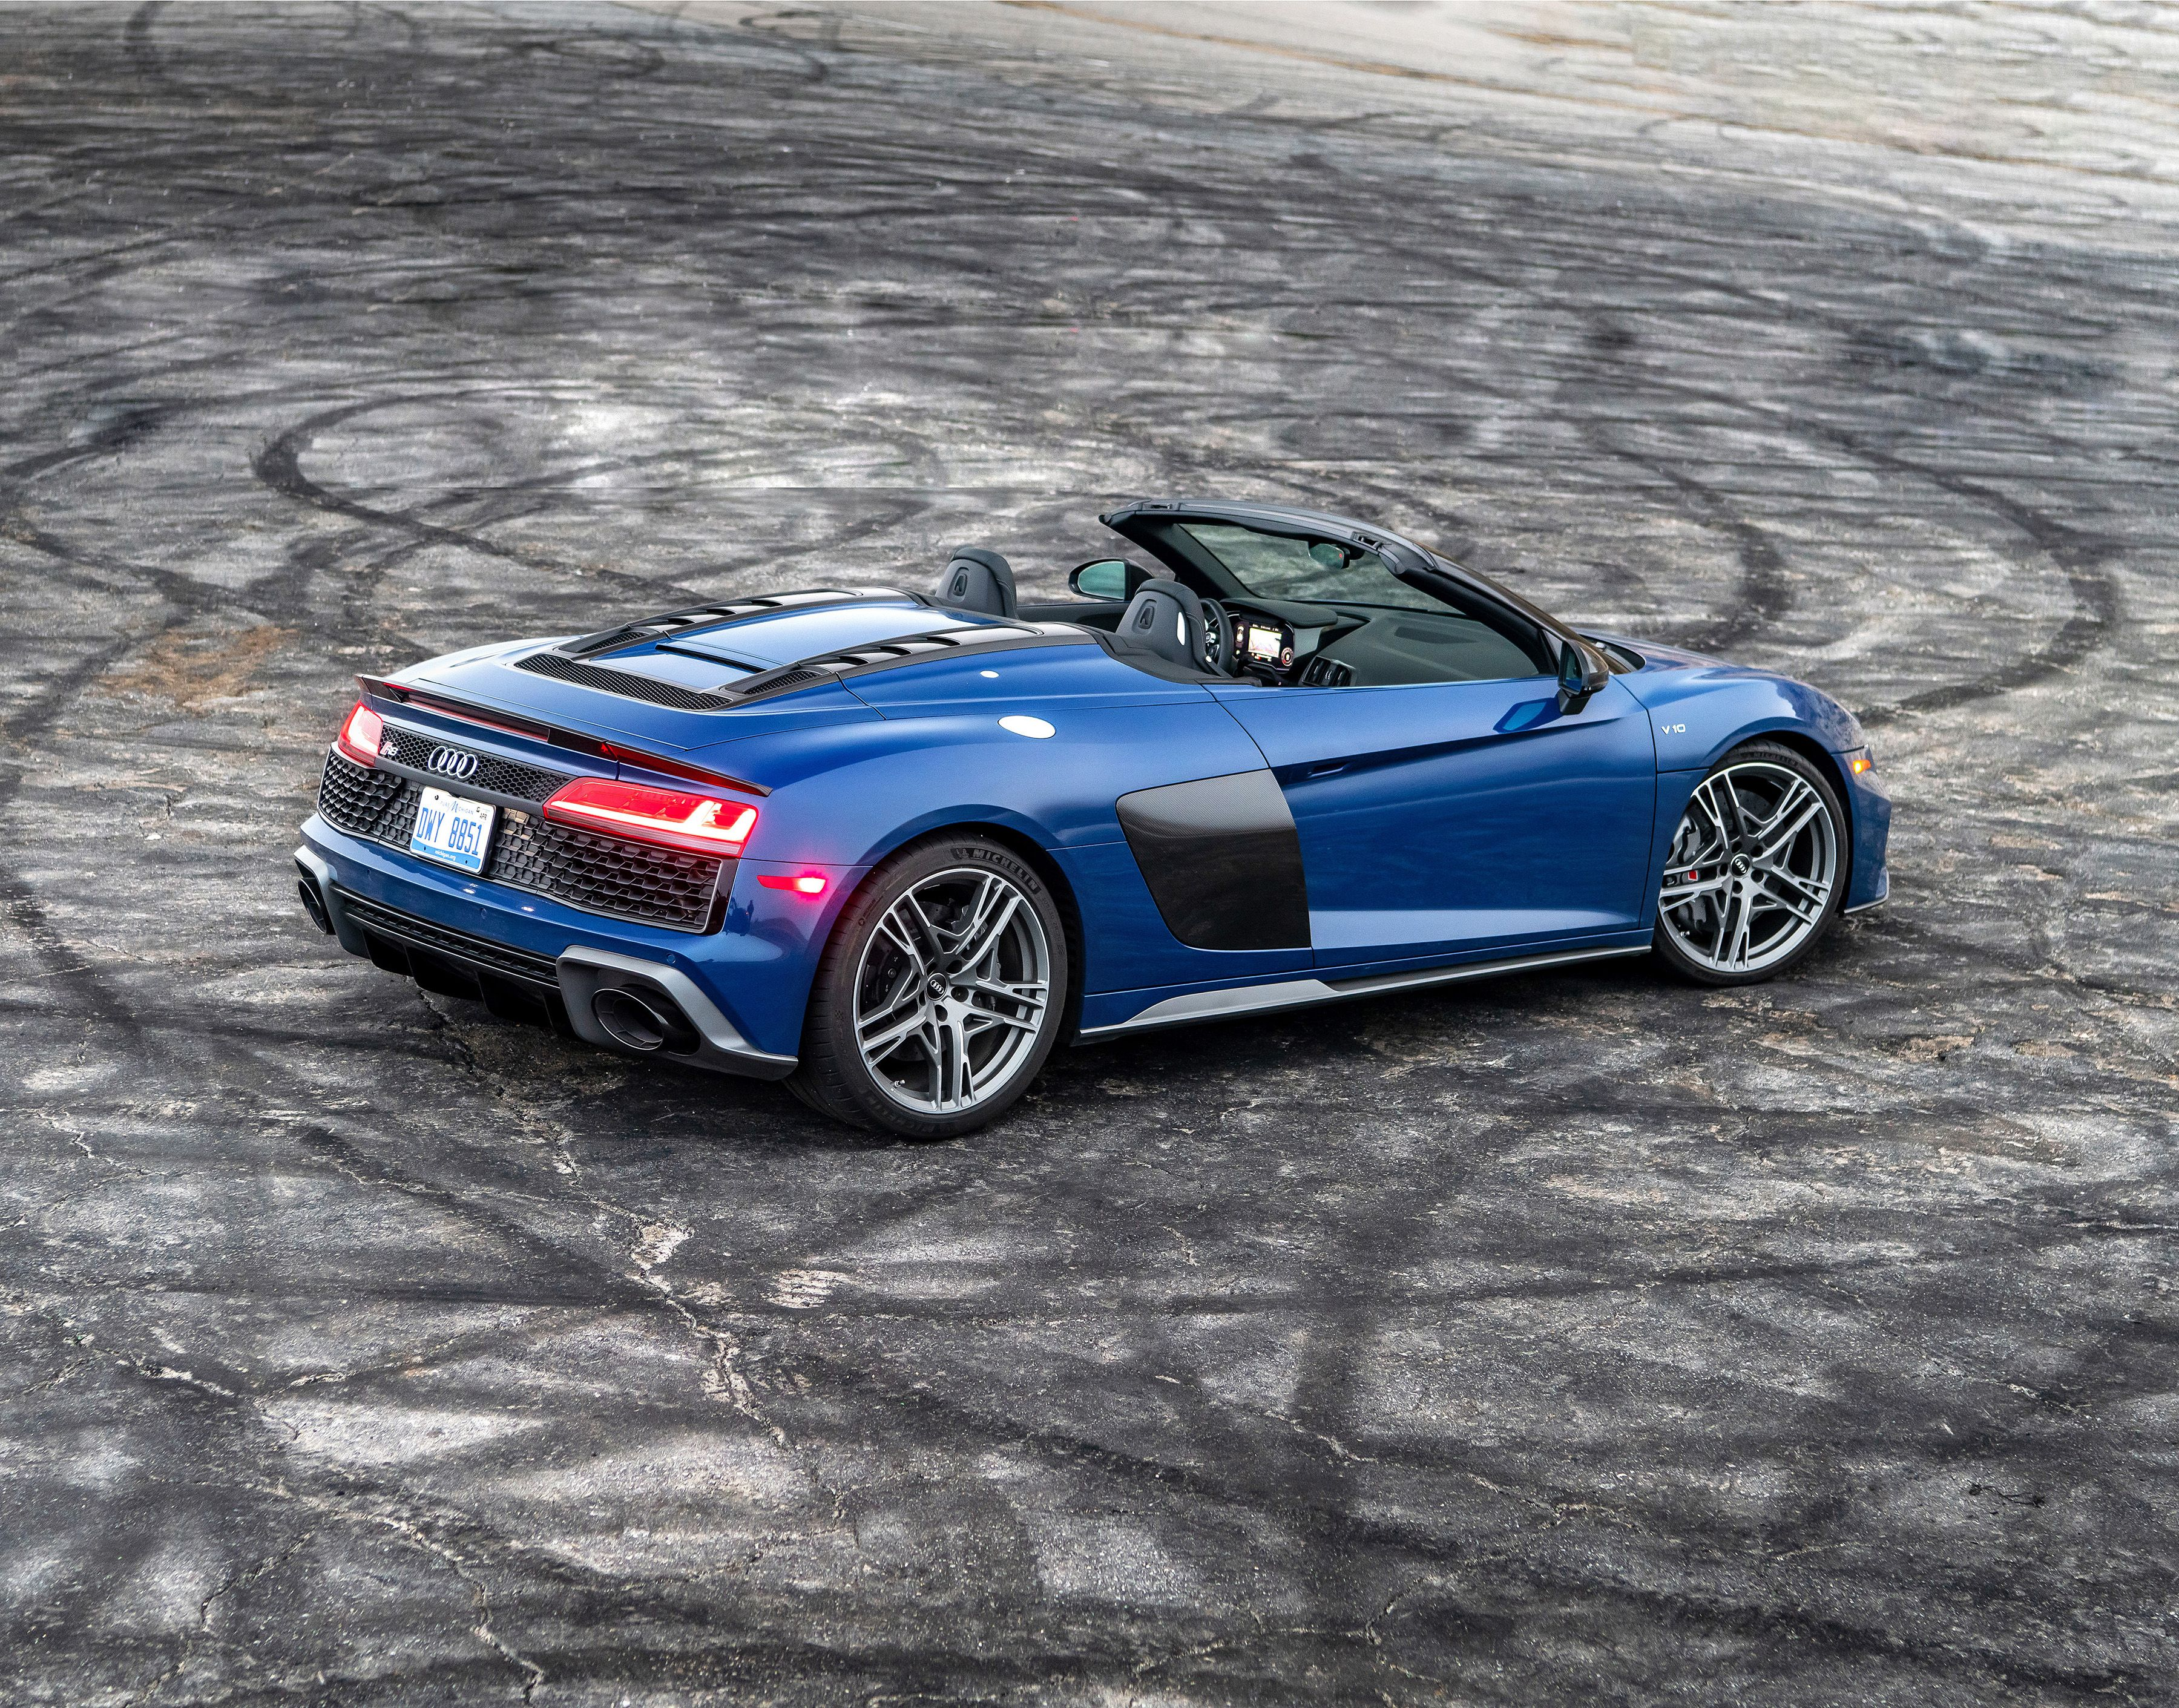 2020 Audi R8 Spyder Was Made To Chase Sunsets